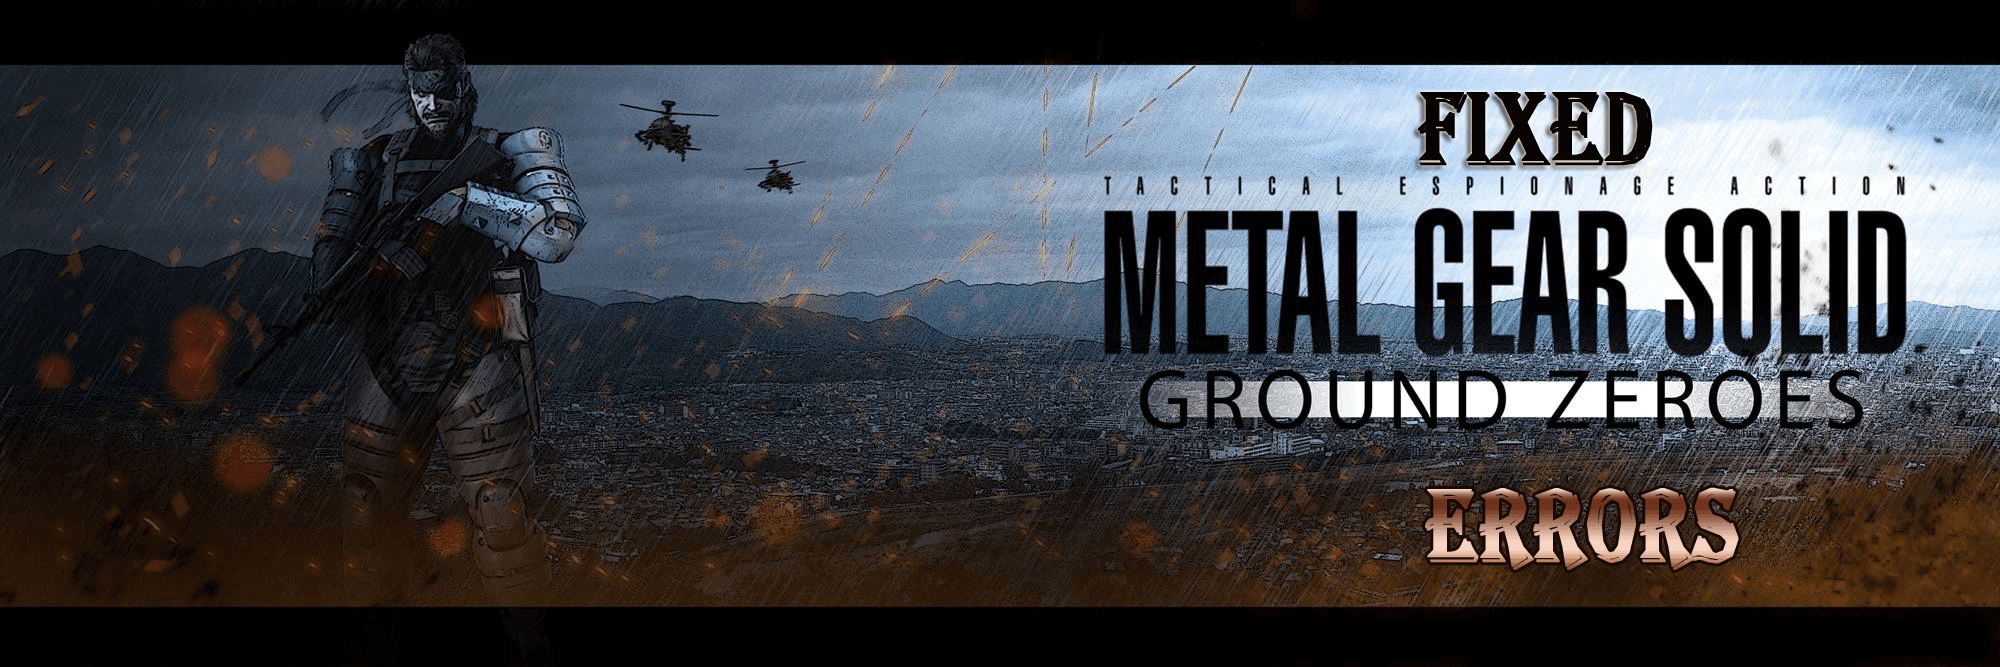 FIXED] Metal Gear Solid V Ground Zeroes Game Not Starting